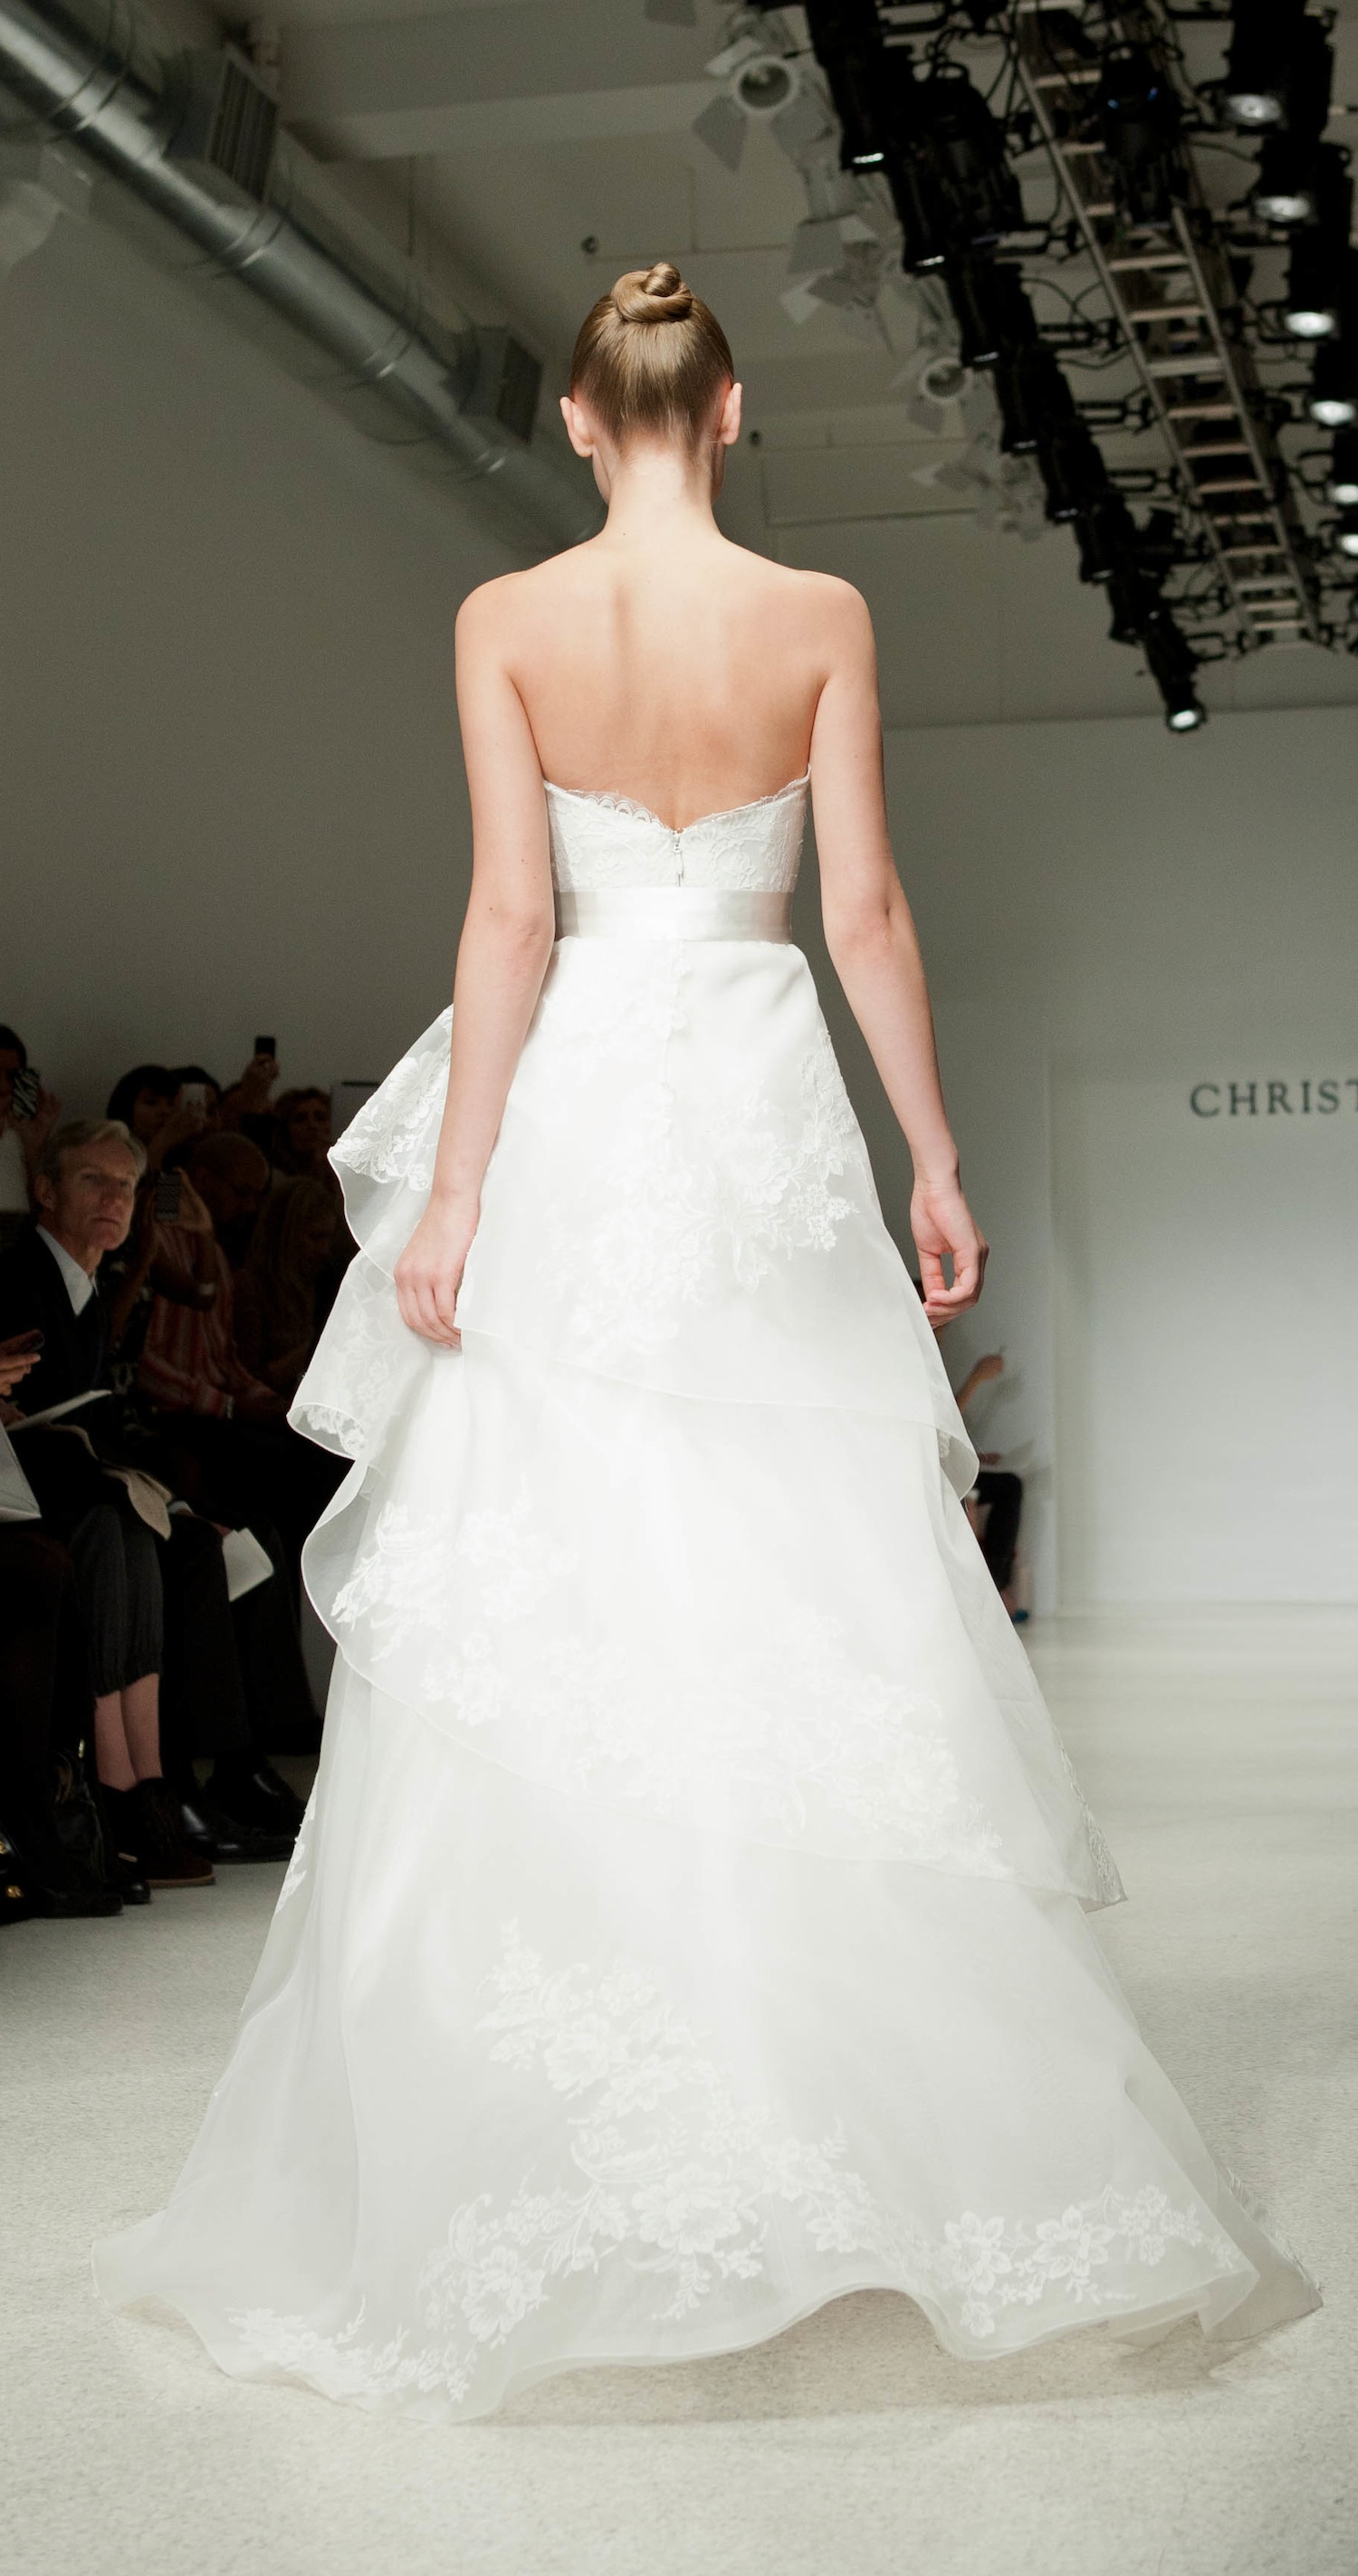 2012_wedding_dress_christos_bridal_gowns_ellis_back.original